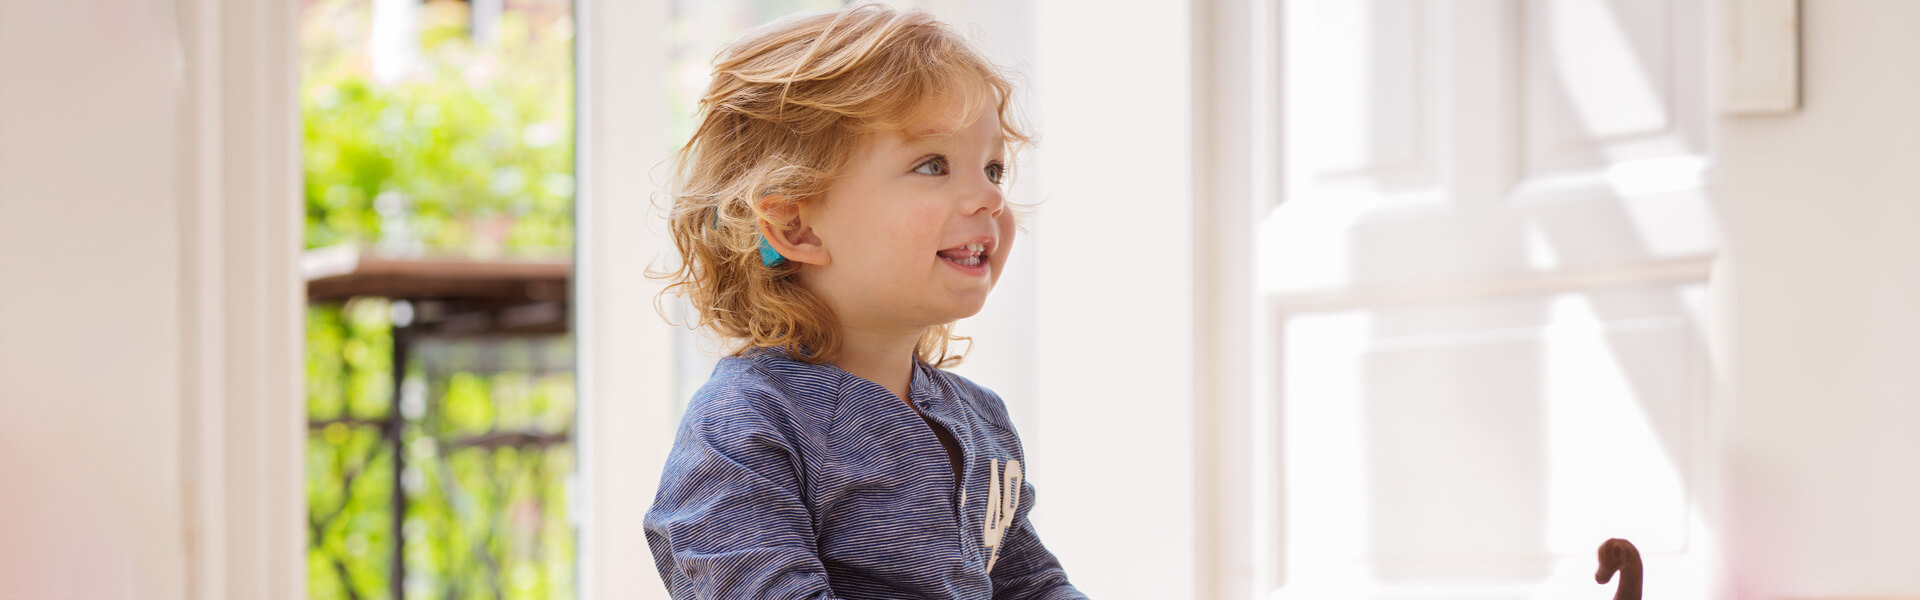 Choosing Neuro for your child